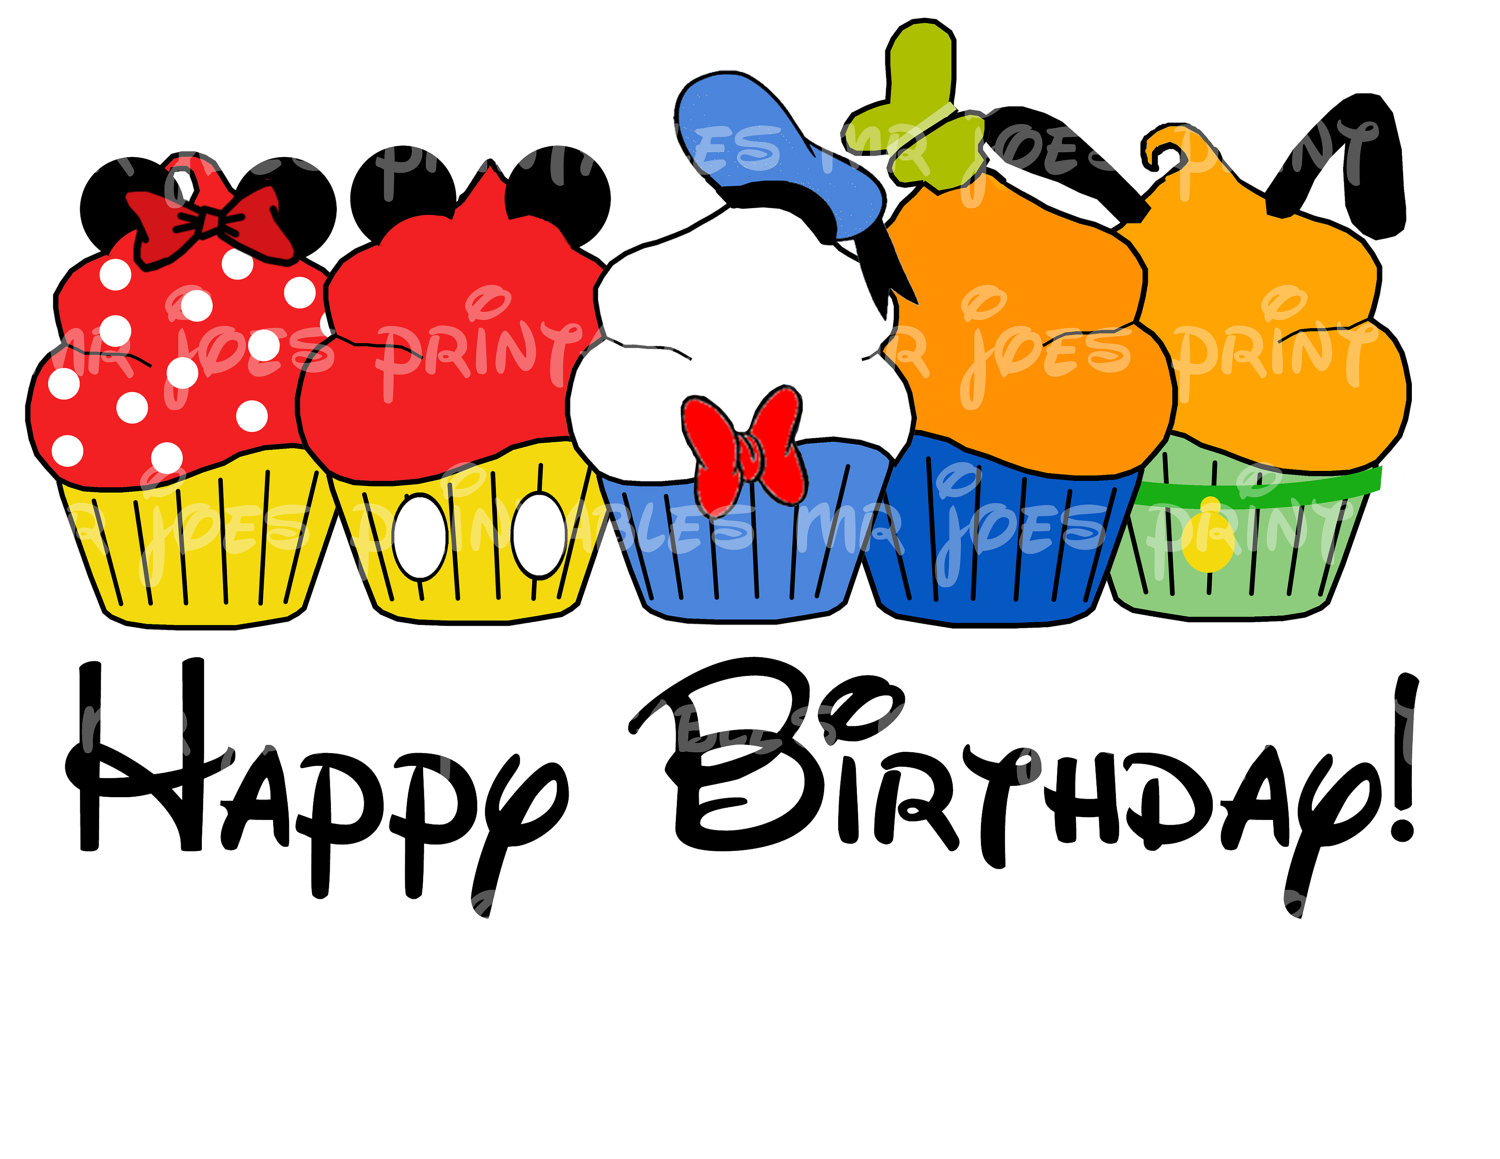 disney happy birthday images ; ae593468a8b81d883172cab9abbc9e4f